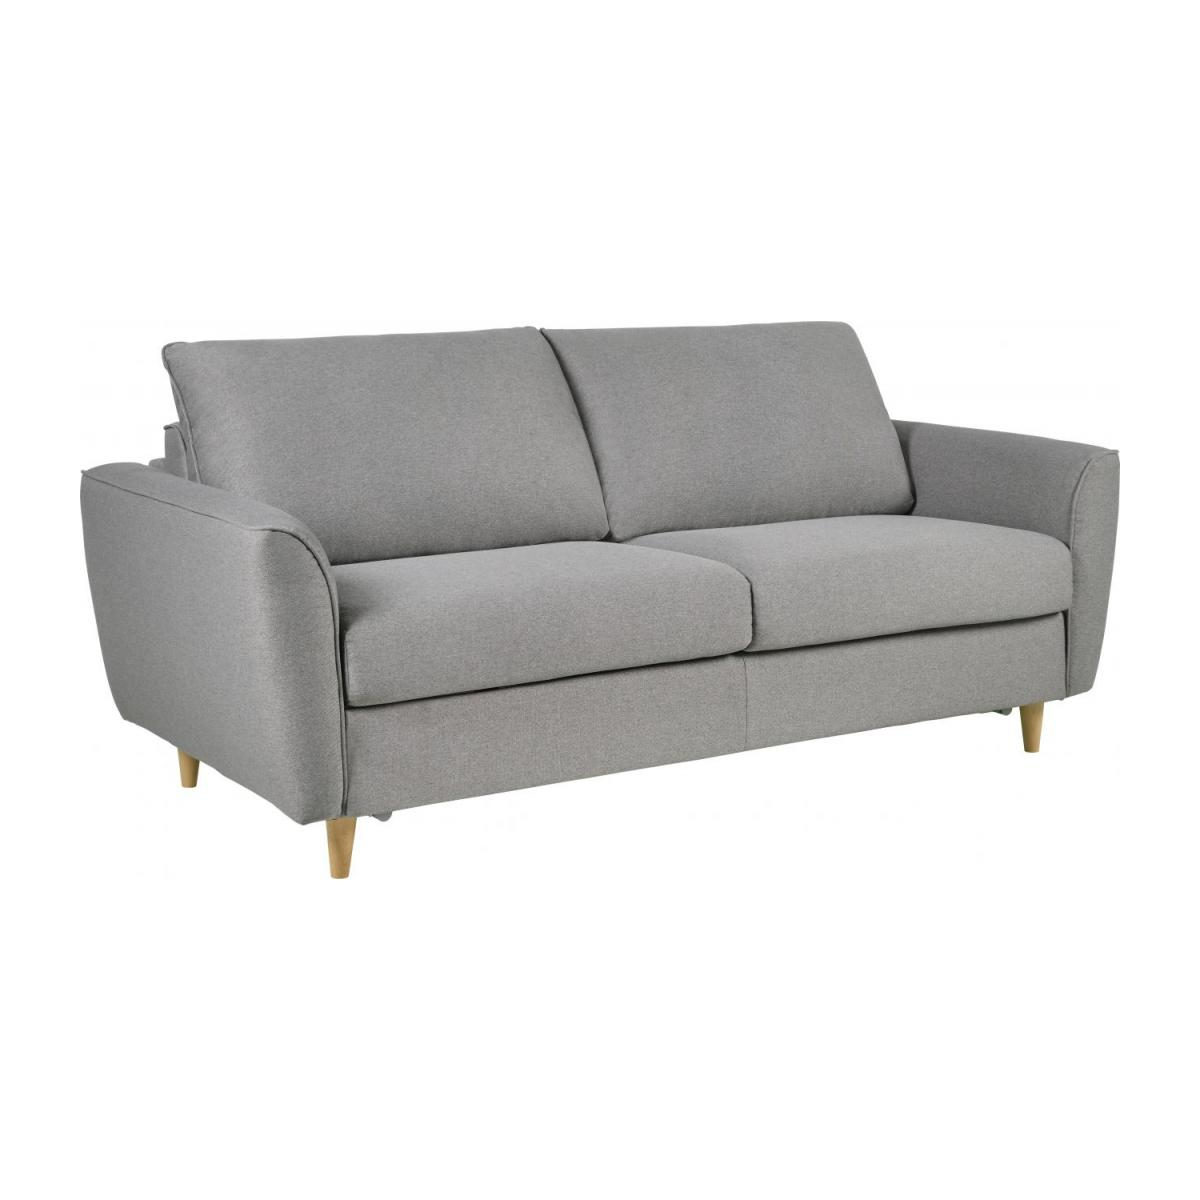 3 seater Fabric Sofa Bed Light Grey n°1